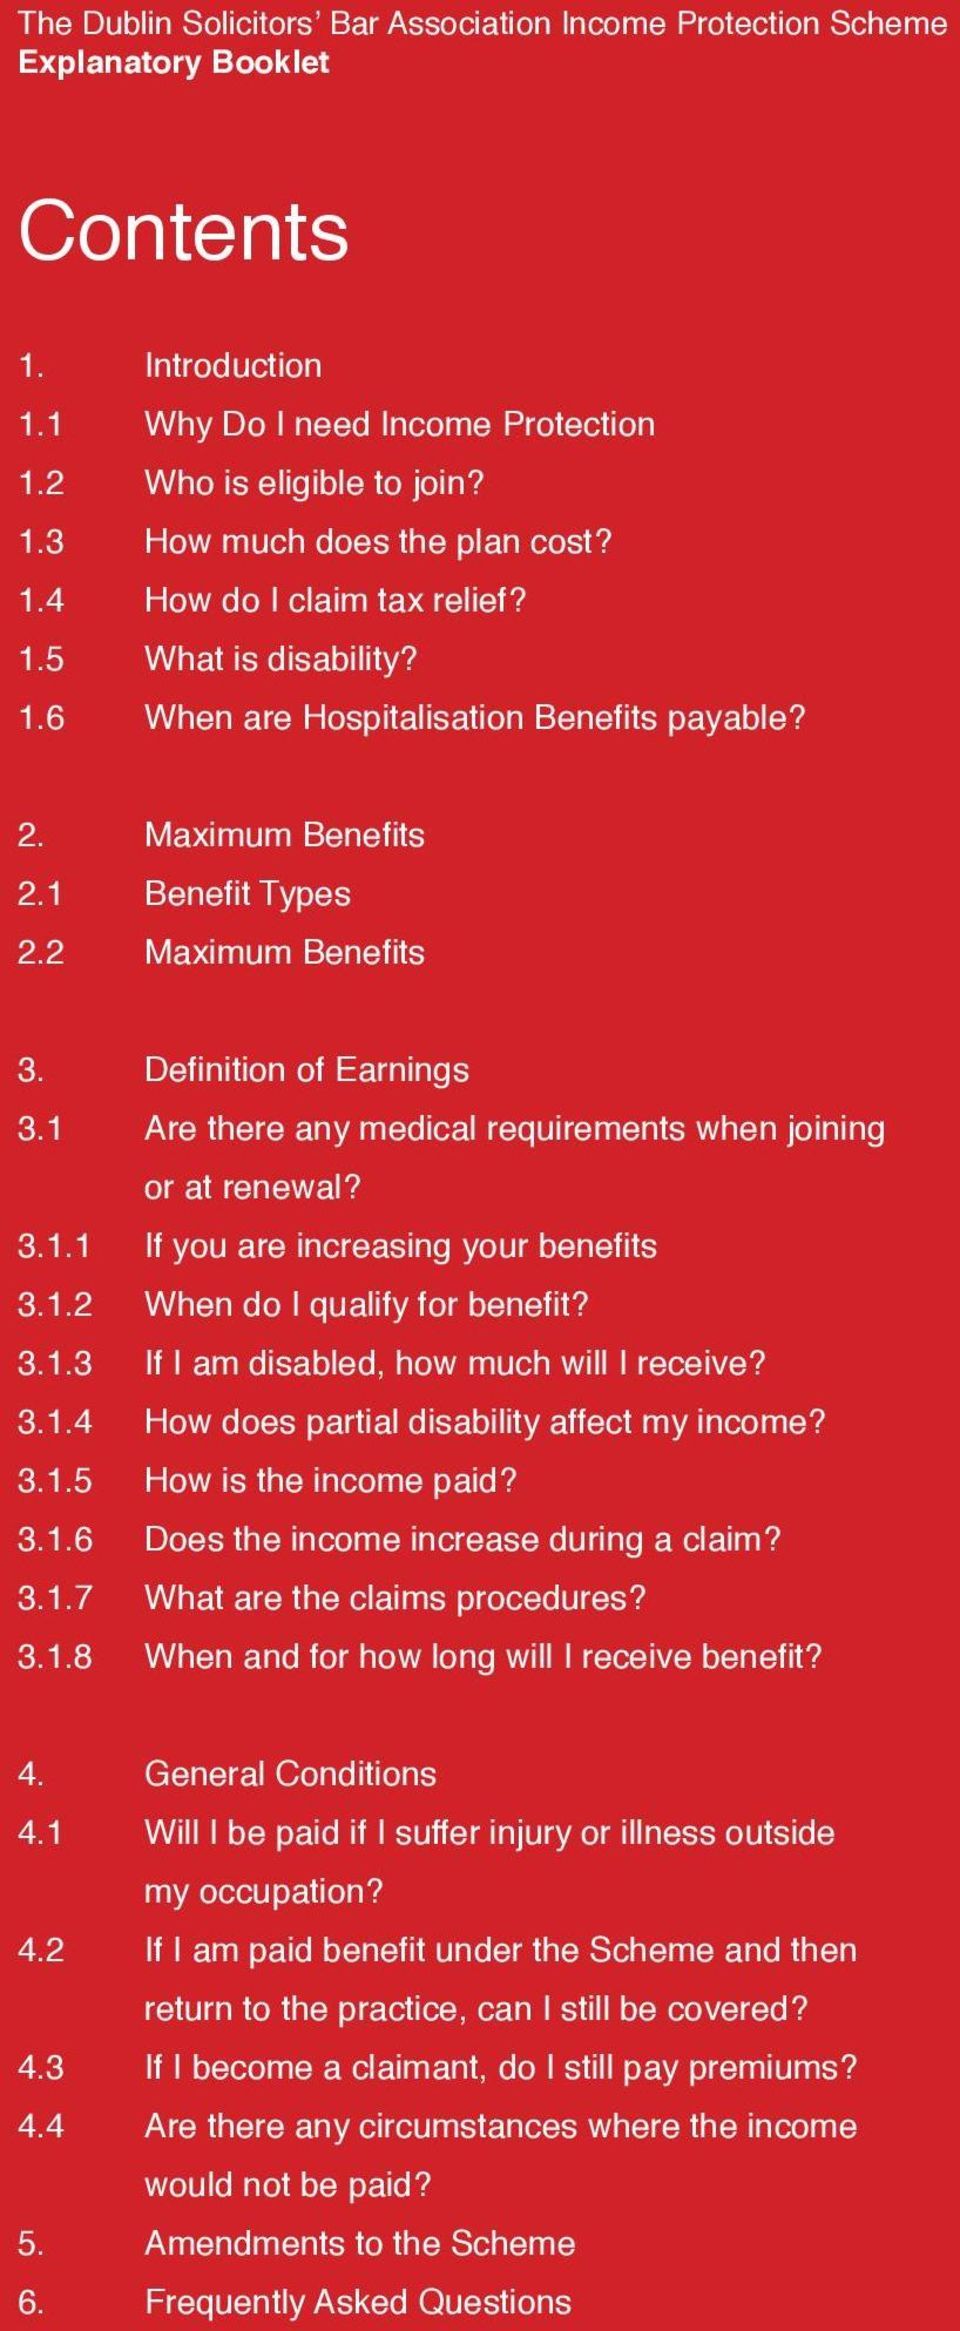 1 Are there any medical requirements when joining or at renewal? 3.1.1 If you are increasing your benefits 3.1.2 When do I qualify for benefit? 3.1.3 If I am disabled, how much will I receive? 3.1.4 How does partial disability affect my income?